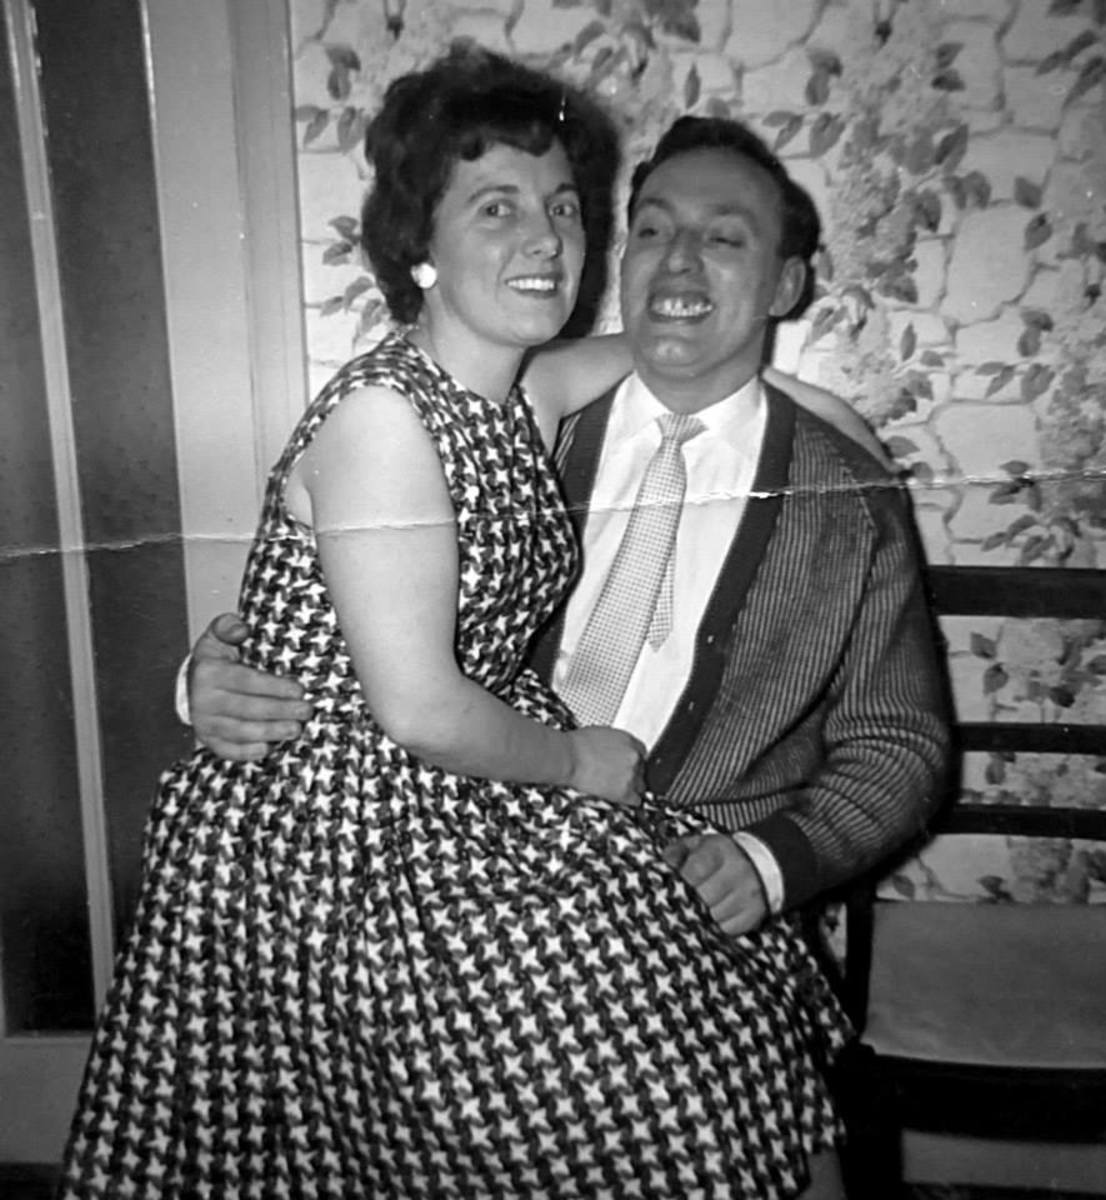 Mum and dad on a night out in the 1960s